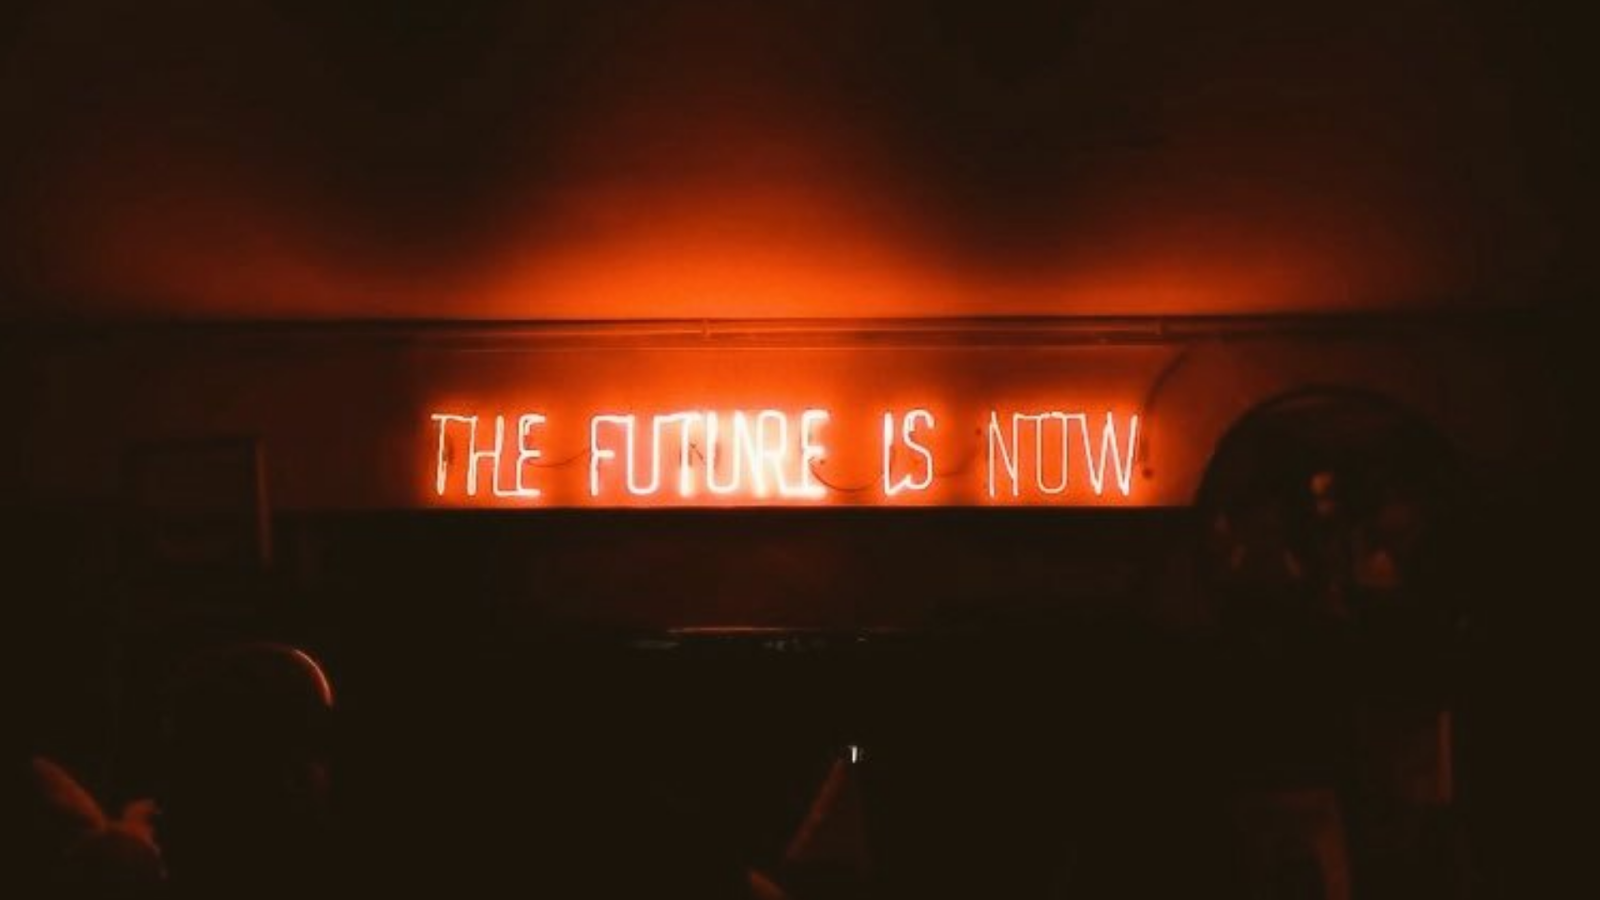 LGBTQ+ lost a safe place as Today x Future announces closure - metroscene mag